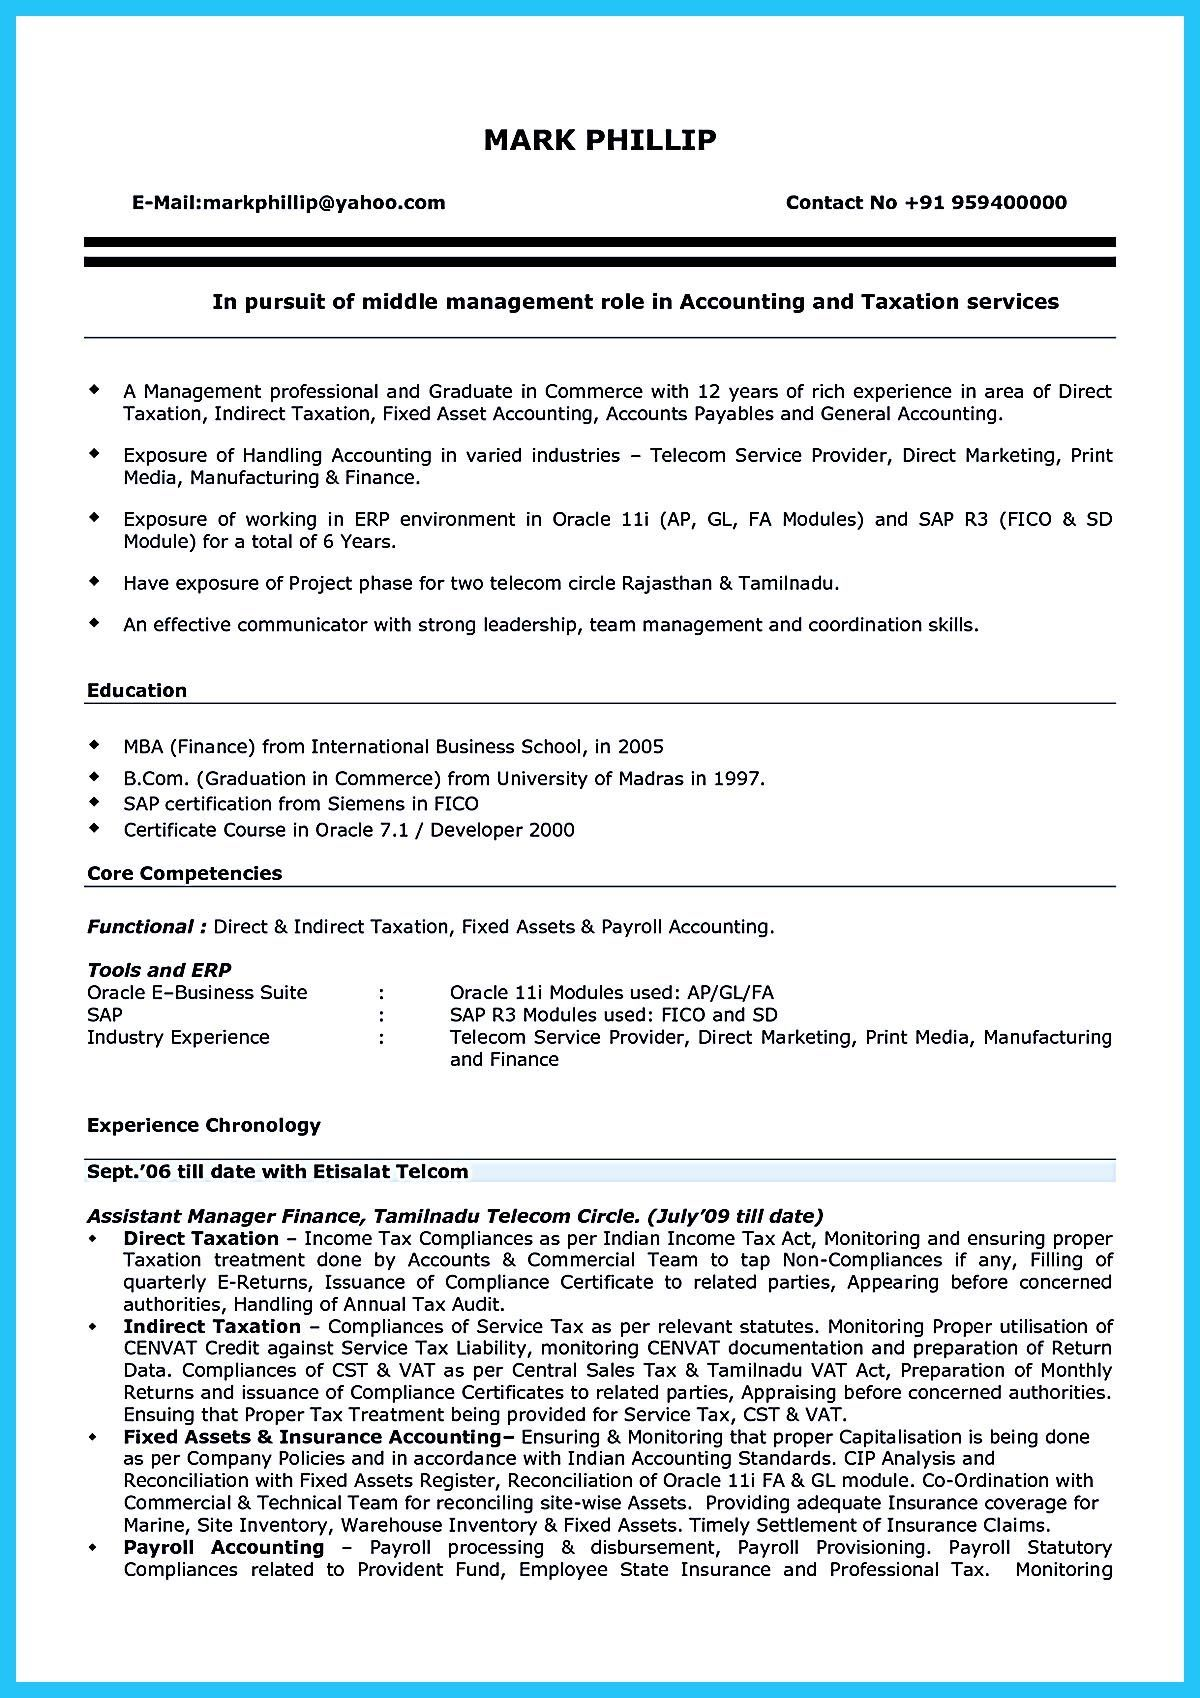 Accounting Student Resume Here Presents How The Resume Of Accounting Student Clearly Made The Accounting Stud Resume Examples Resume Skills Accounting Student